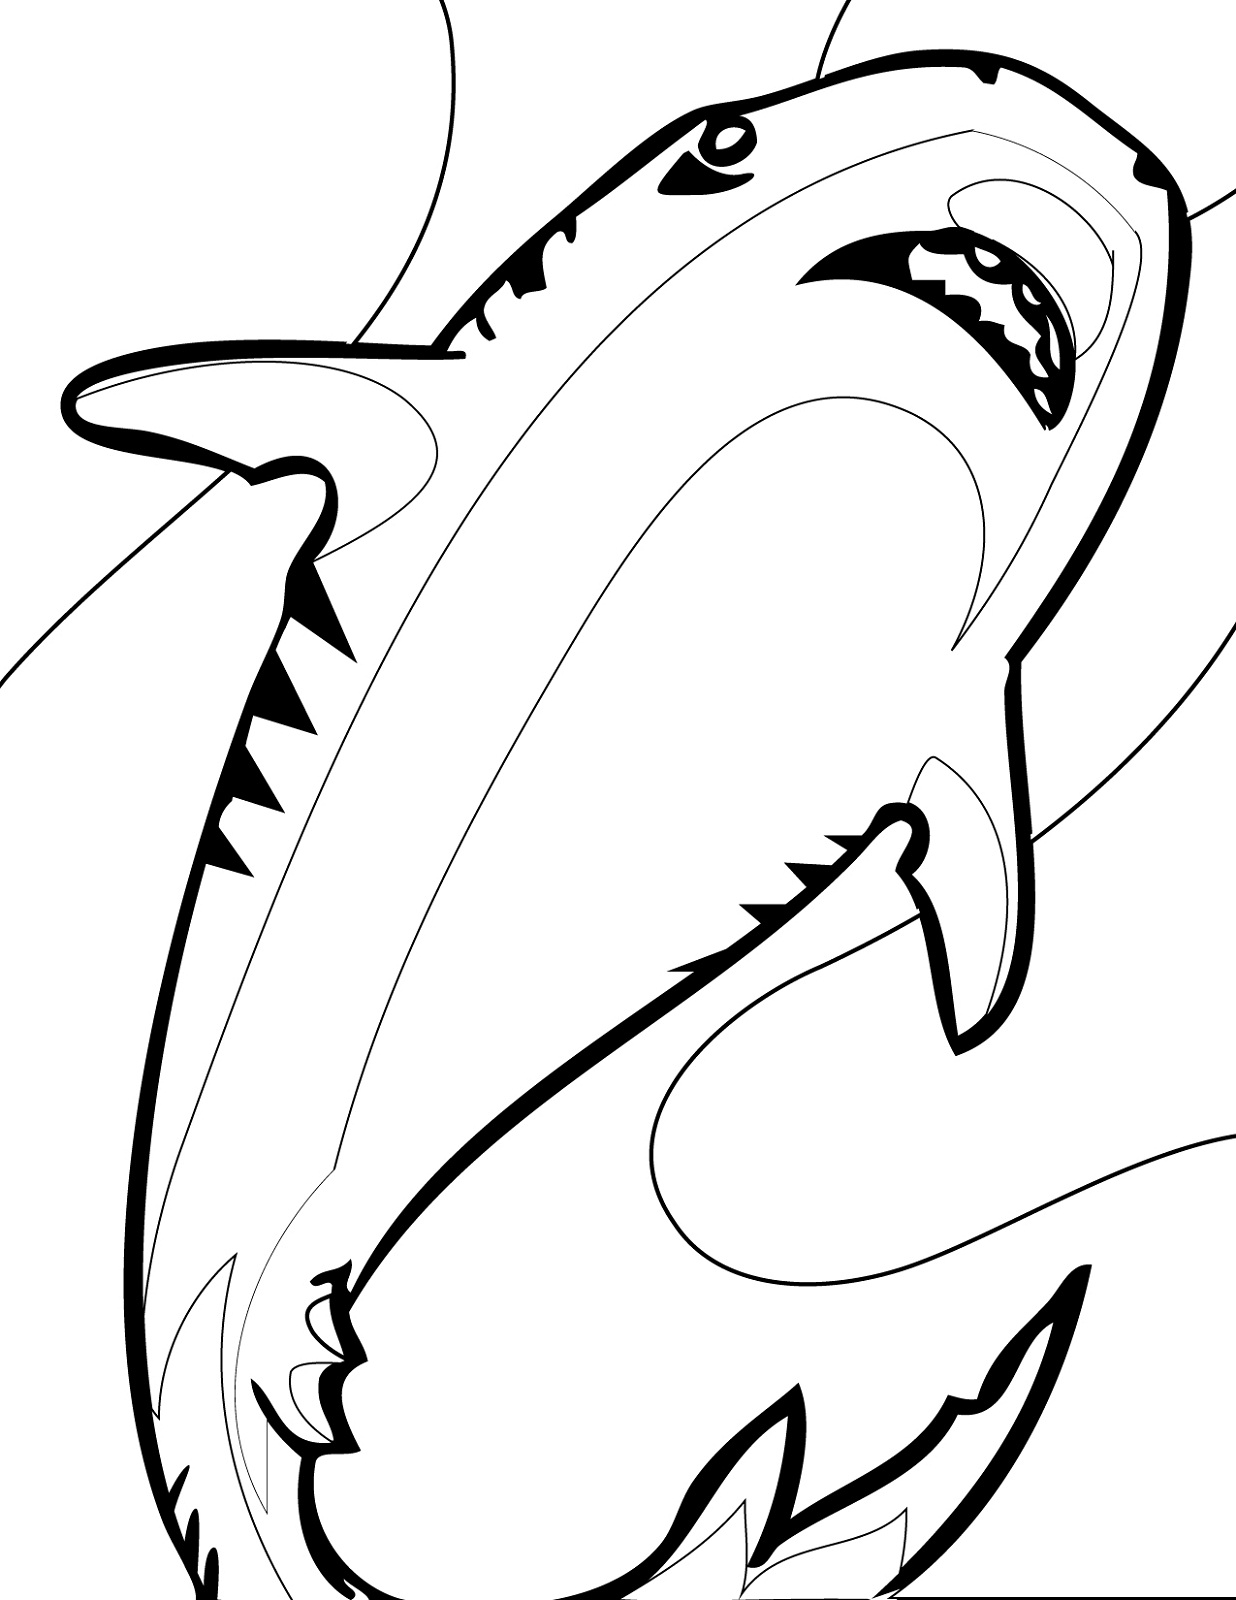 shark-color-page-for-kids